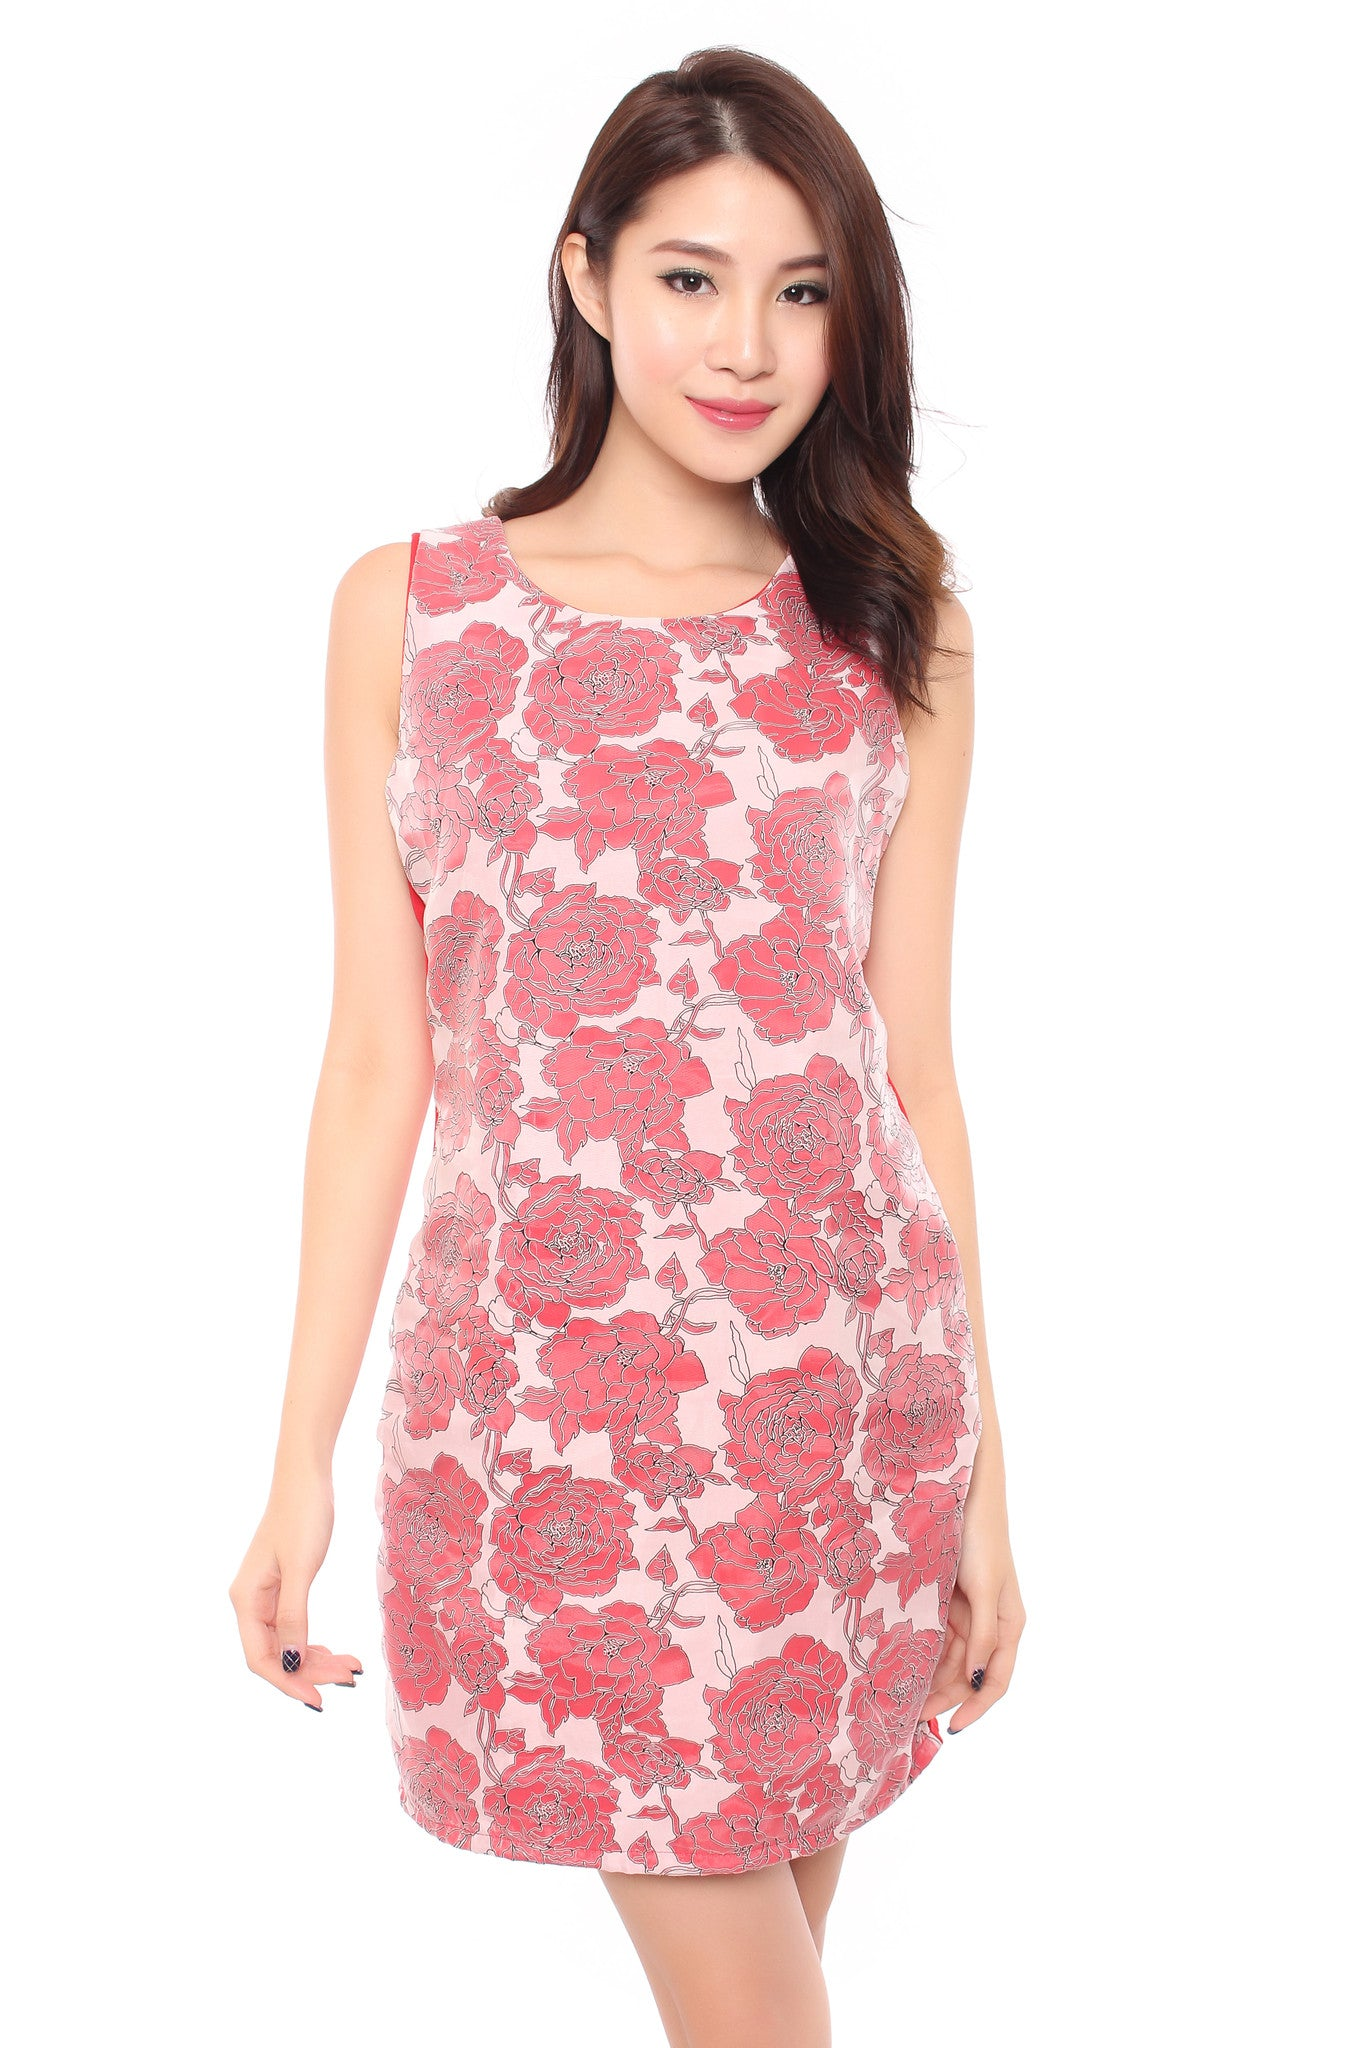 FLORAL ORIENTAL DRESS IN RED